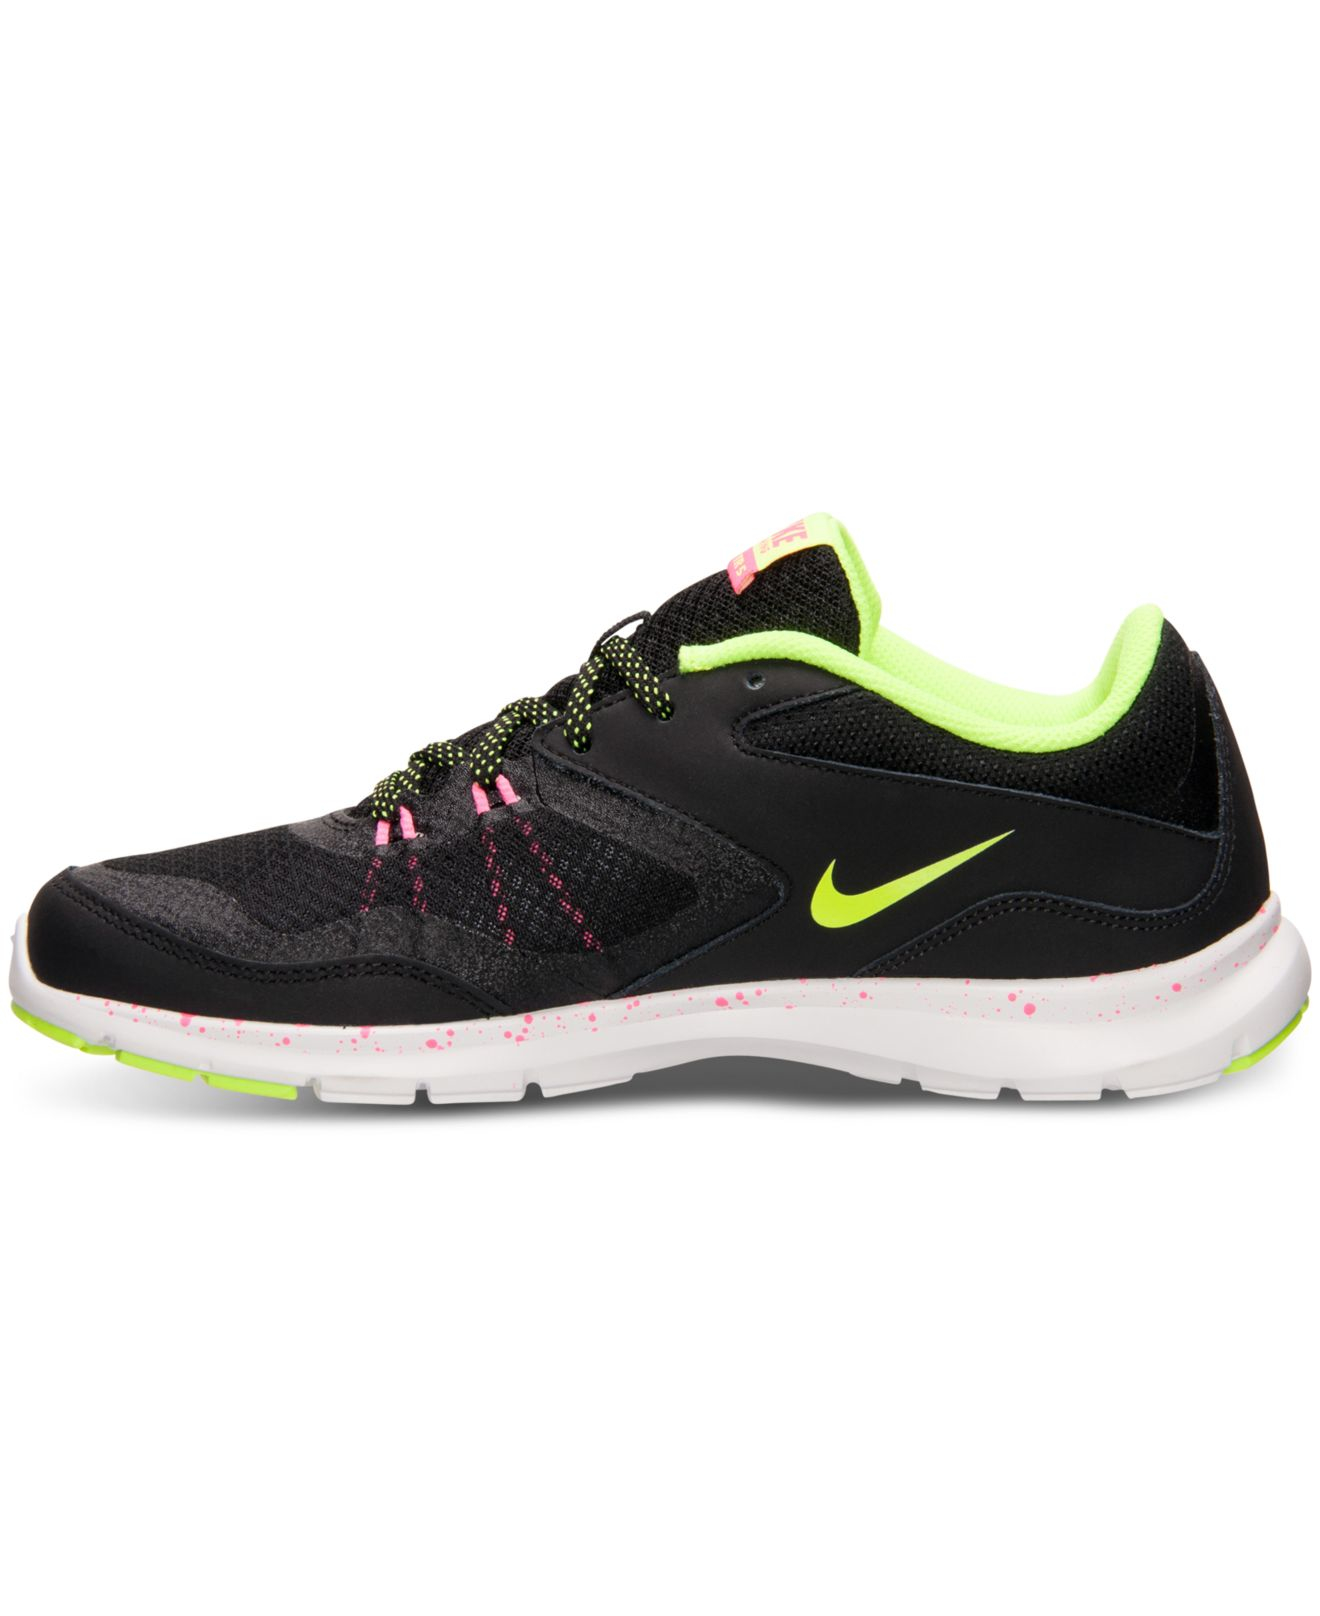 nike women 39 s flex trainer 5 training sneakers from finish. Black Bedroom Furniture Sets. Home Design Ideas